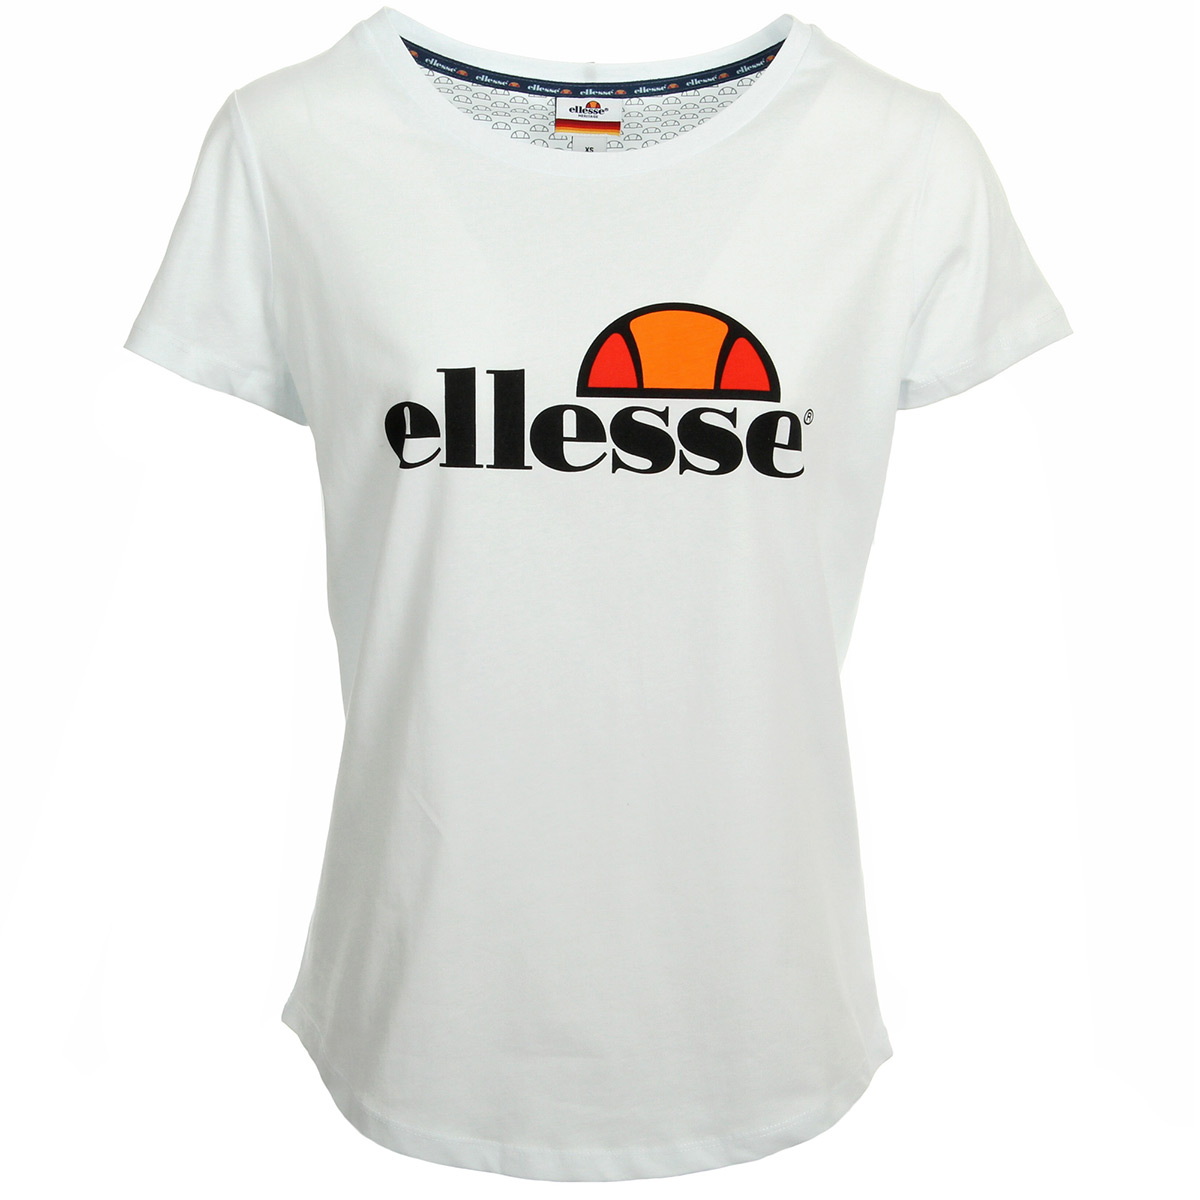 ellesse tee shirt oversize femme col rond uni blanc 1074nblanc t shirts femme. Black Bedroom Furniture Sets. Home Design Ideas